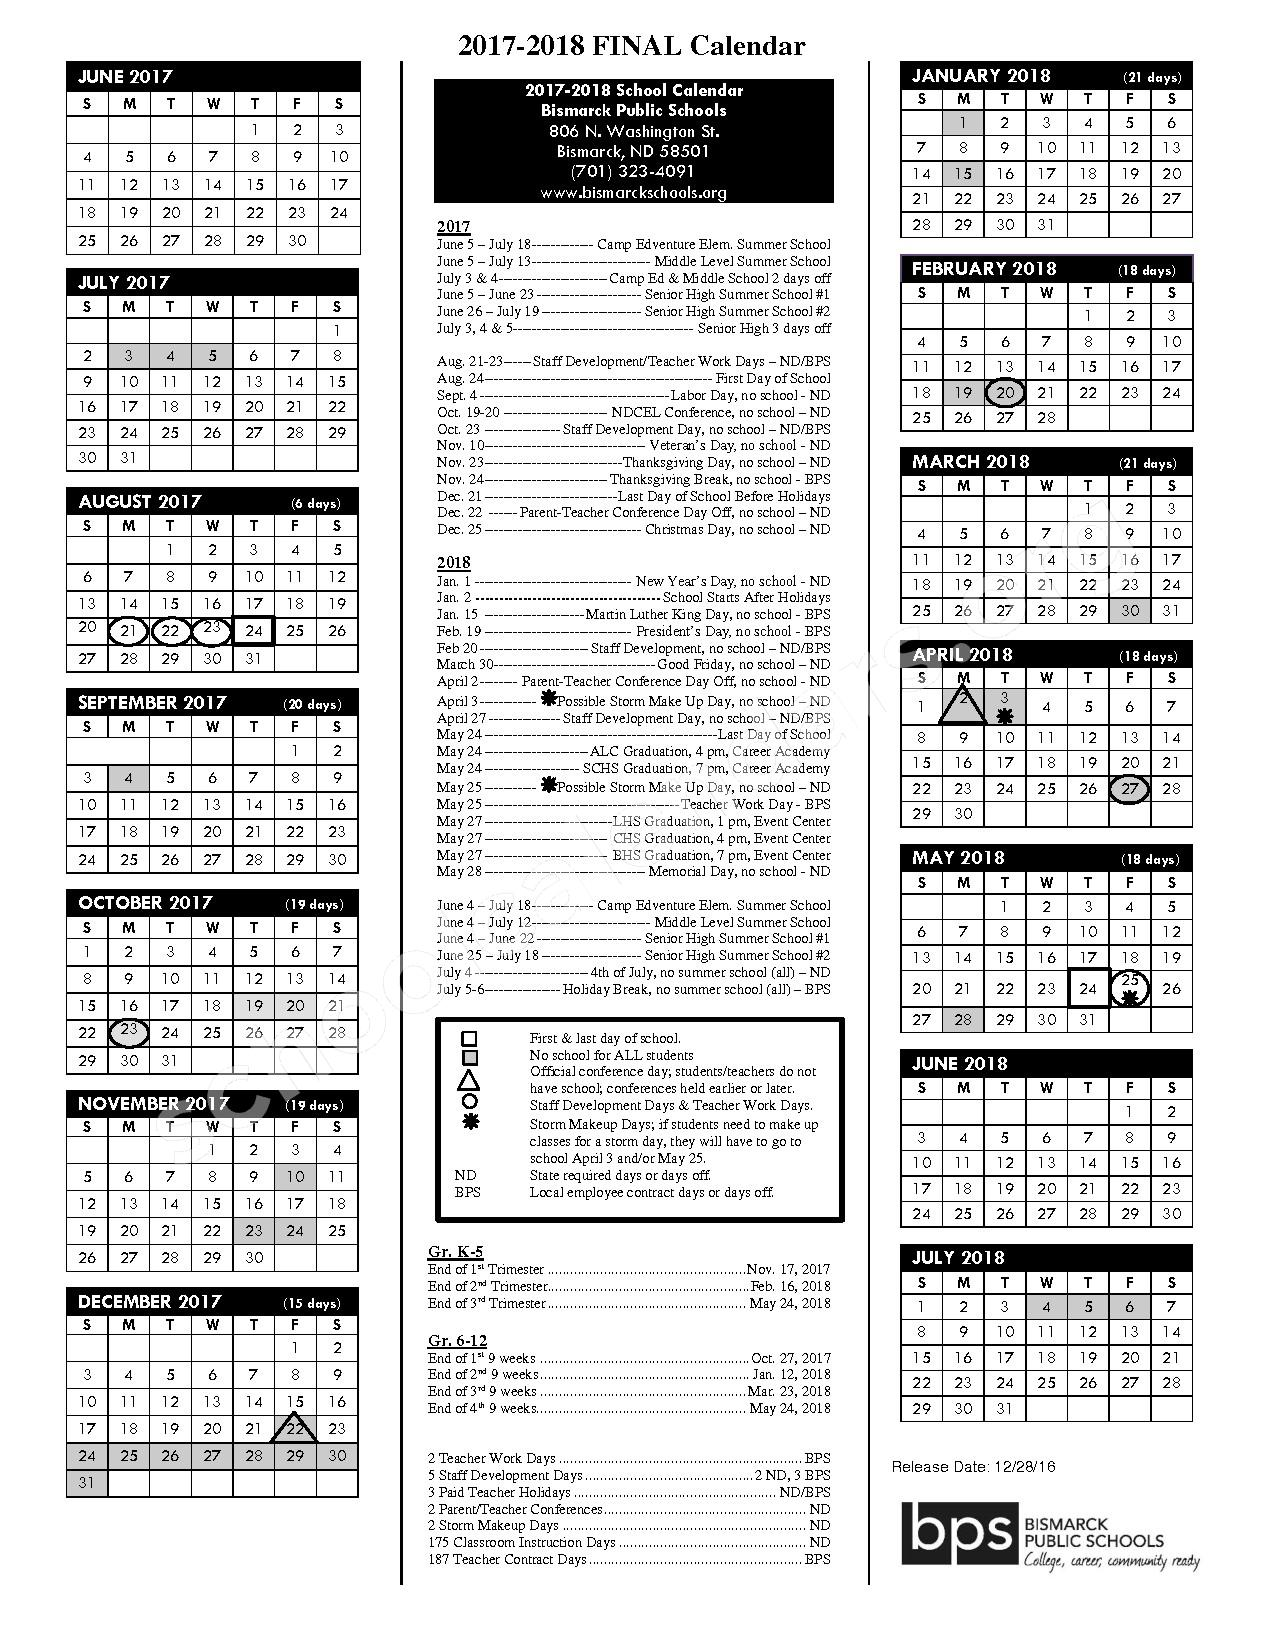 2017 - 2018 school calendar – Wachter Middle School – page 1